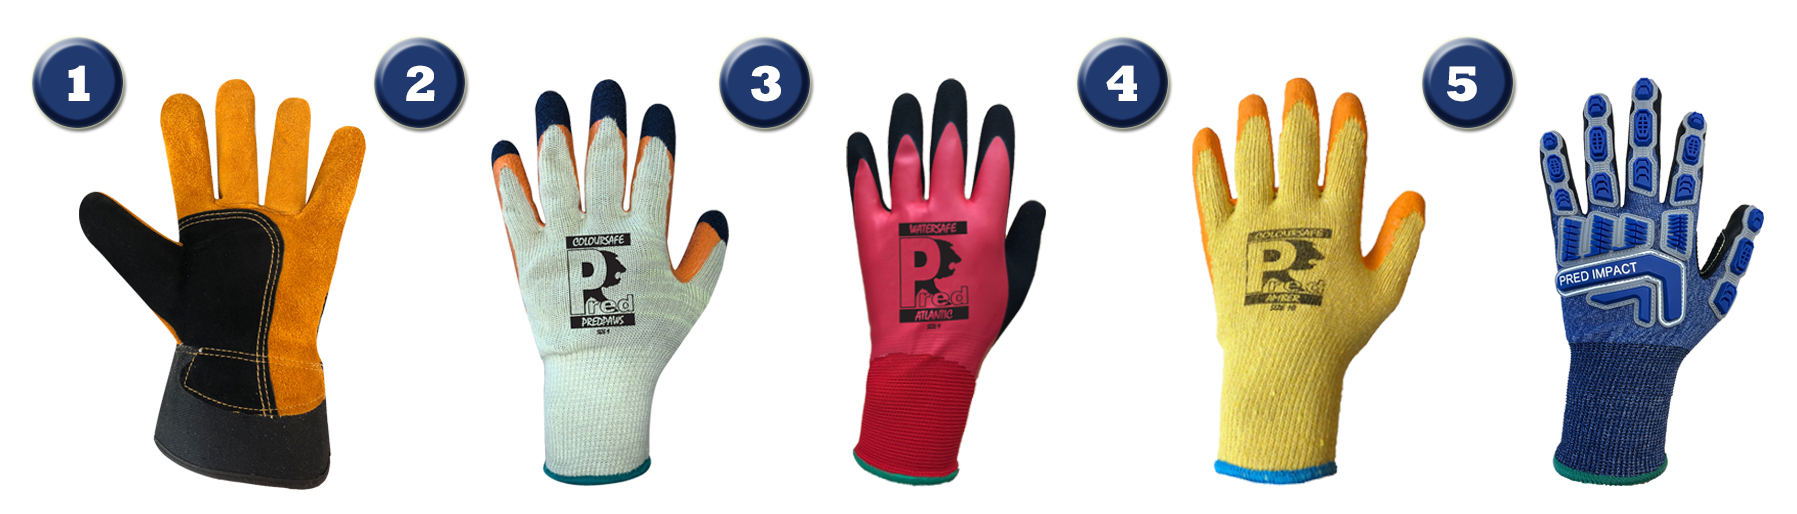 Top 5 Gloves for Construction (images)